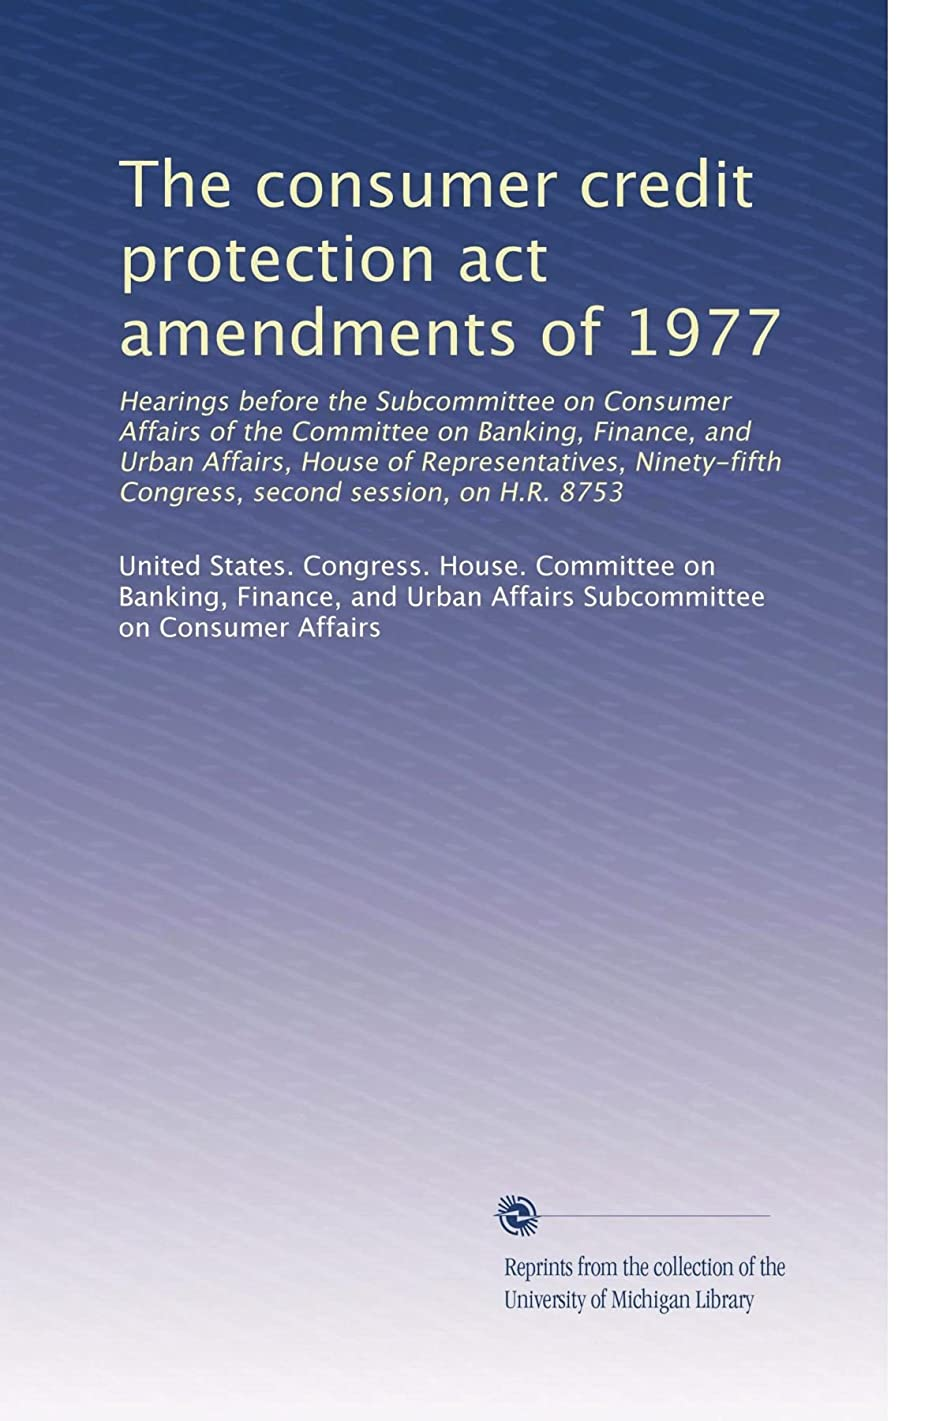 The consumer credit protection act amendments of 1977: Hearings before the Subcommittee on Consumer Affairs of the Committee on Banking, Finance, and ... second session, on H.R. 8753 (Volume 4)